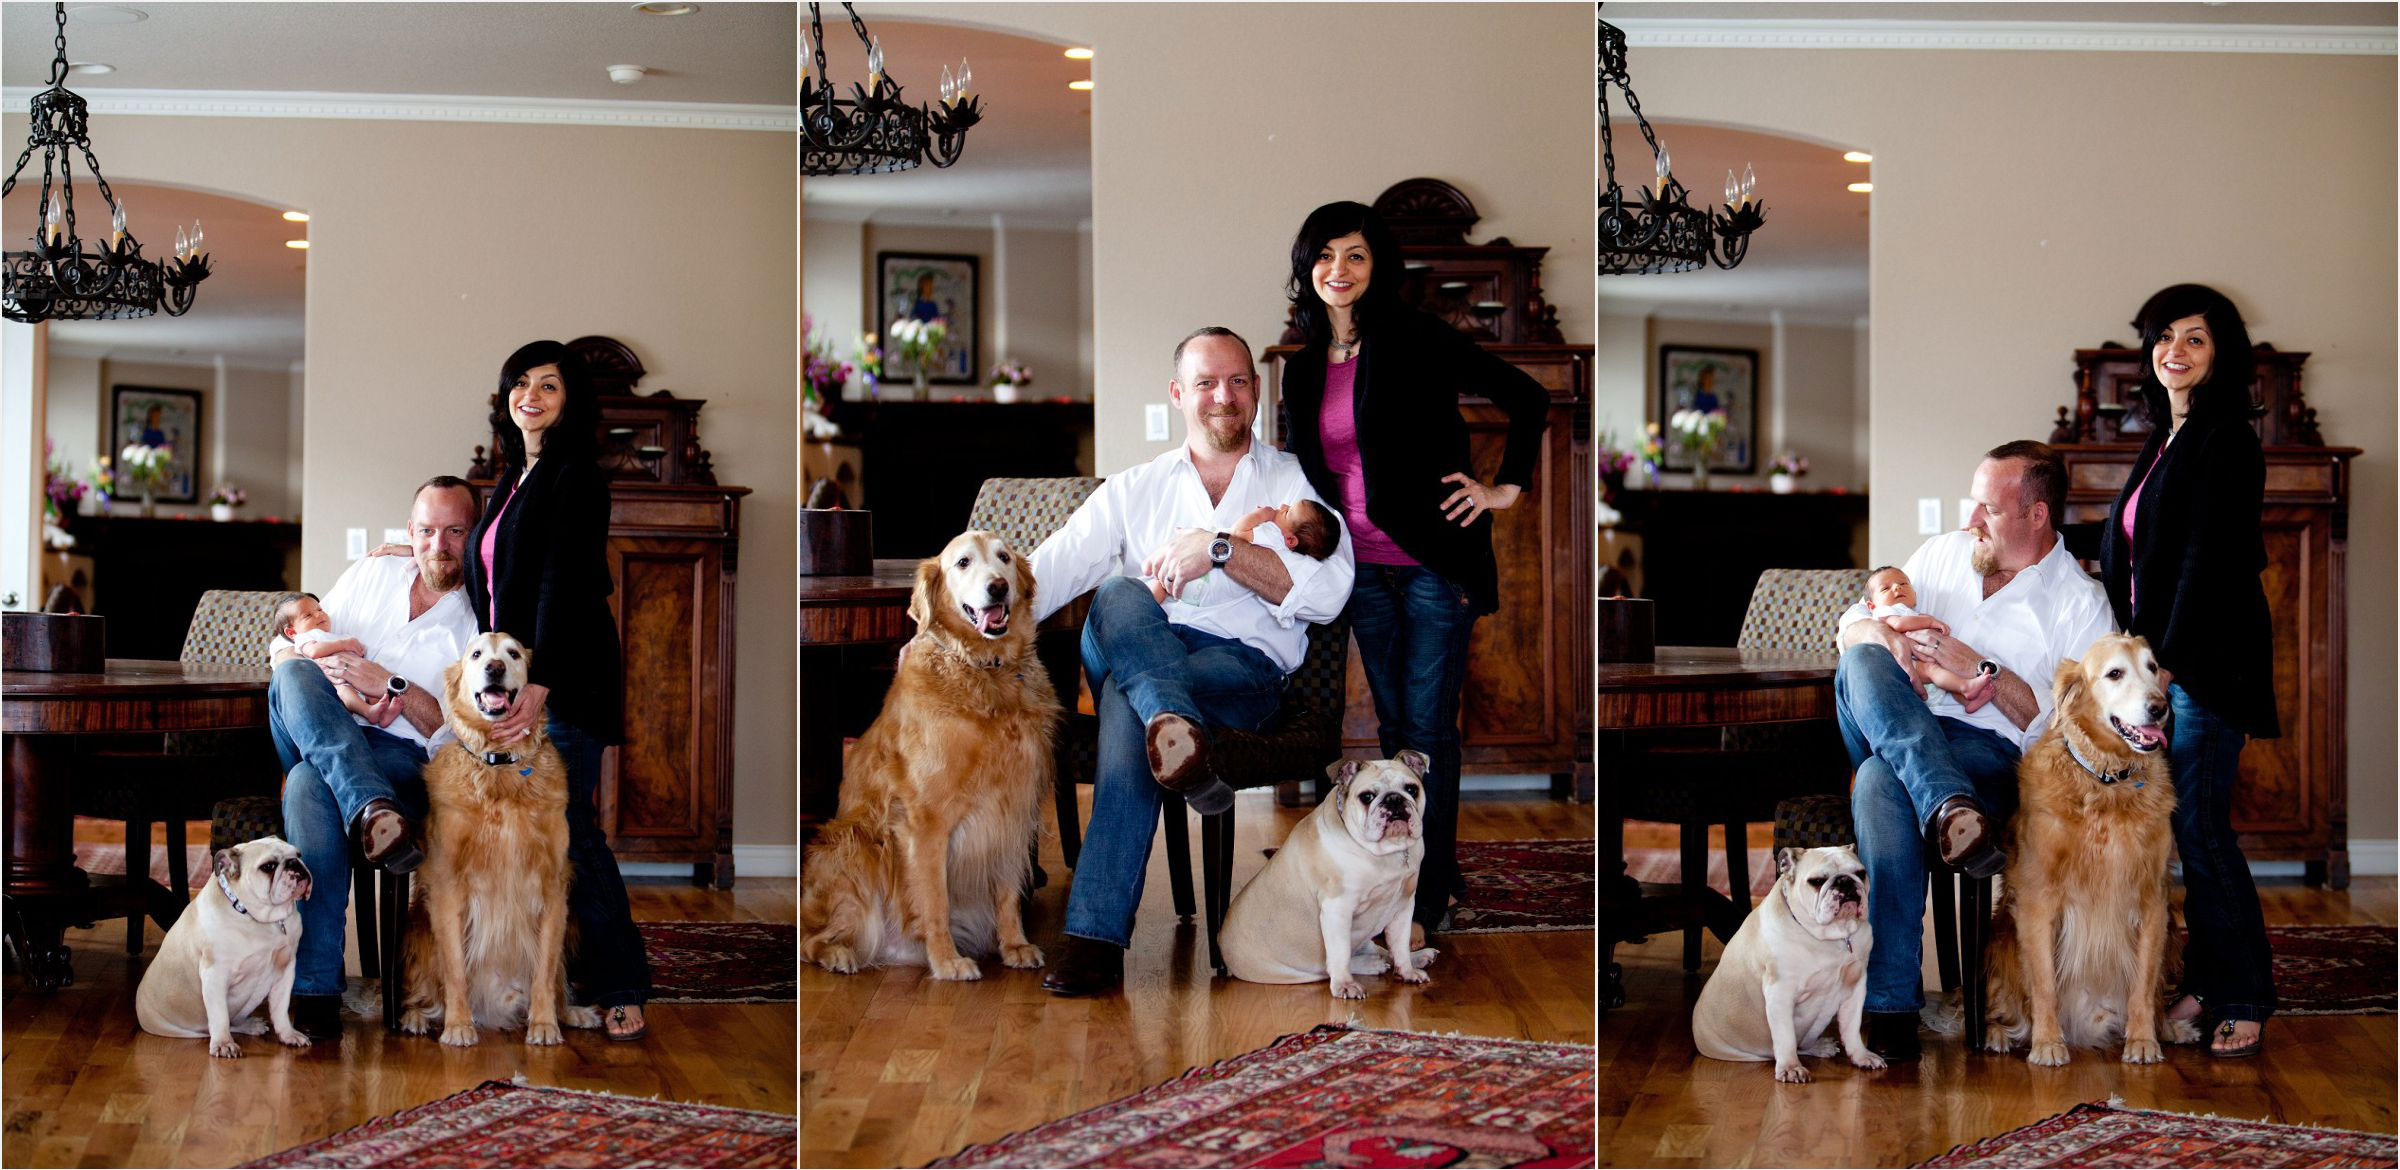 Classic-Denver-hilltop-home-location-family-photography-with-dogs-007